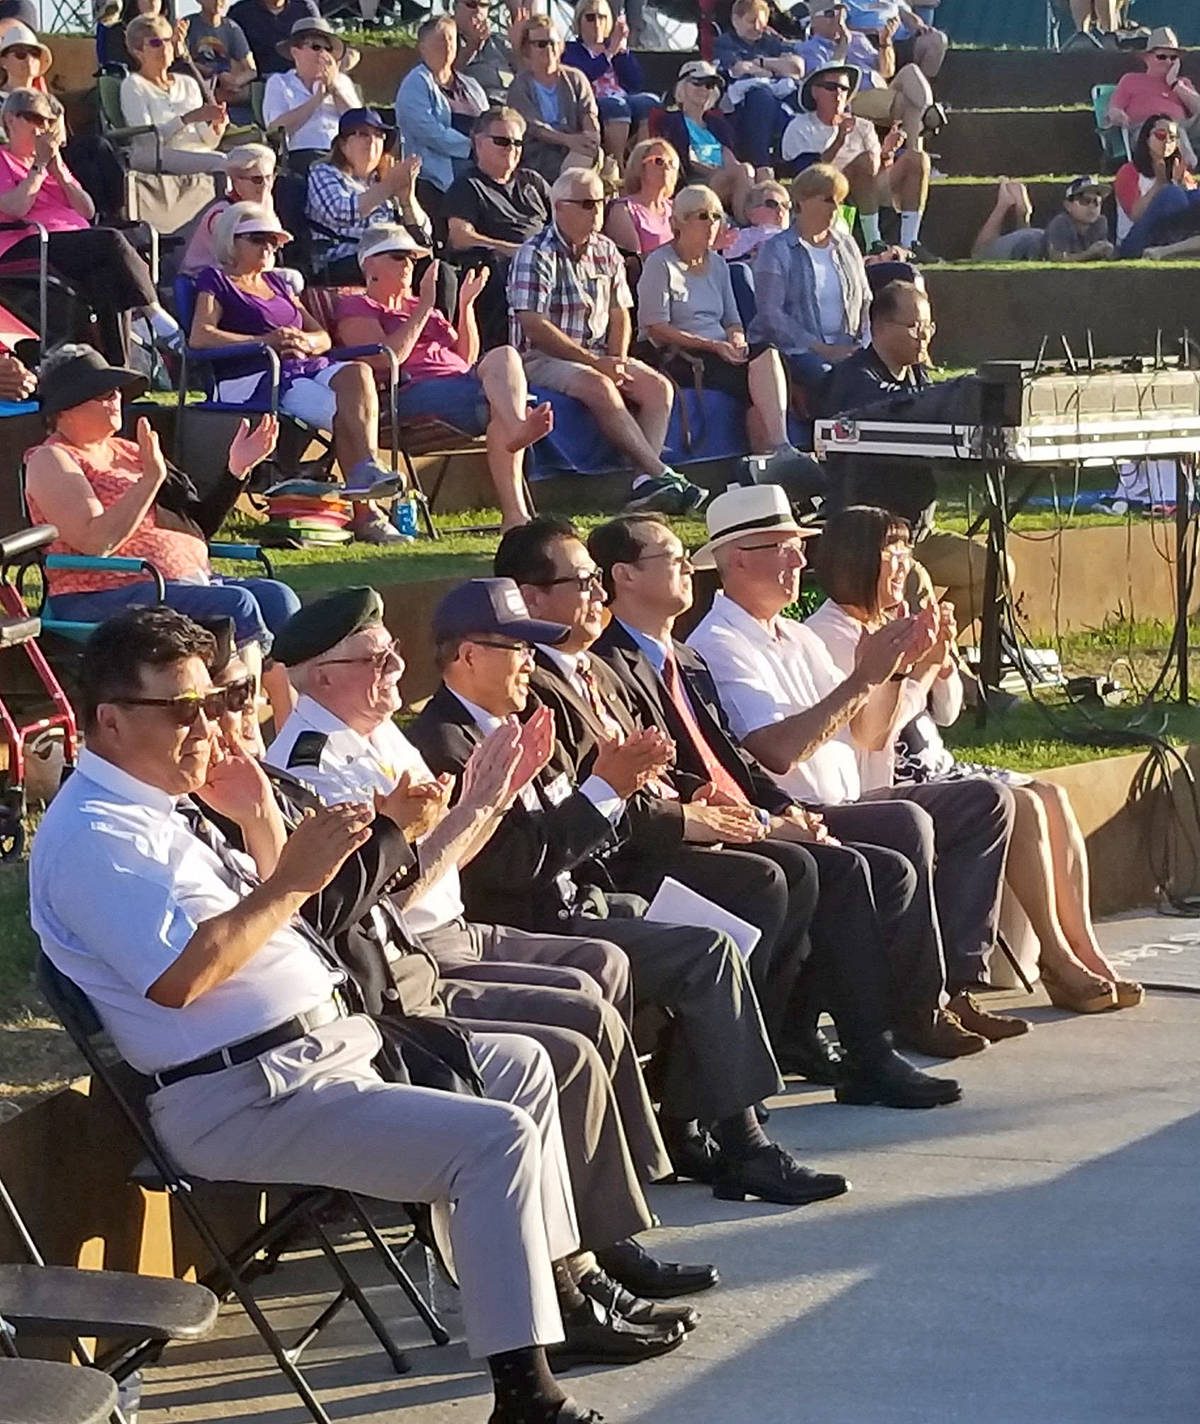 Members of the Gapyeong Stone Committee, Korean War veterans, and dignitaries joined Township of Langley Mayor Jack Froese for the announcement of a Korean War memorial in the Derek Doubleday Arboretum during the Noreum Machi concert at the Willoughby Community Park Amphitheatre on July 18. Submitted photo